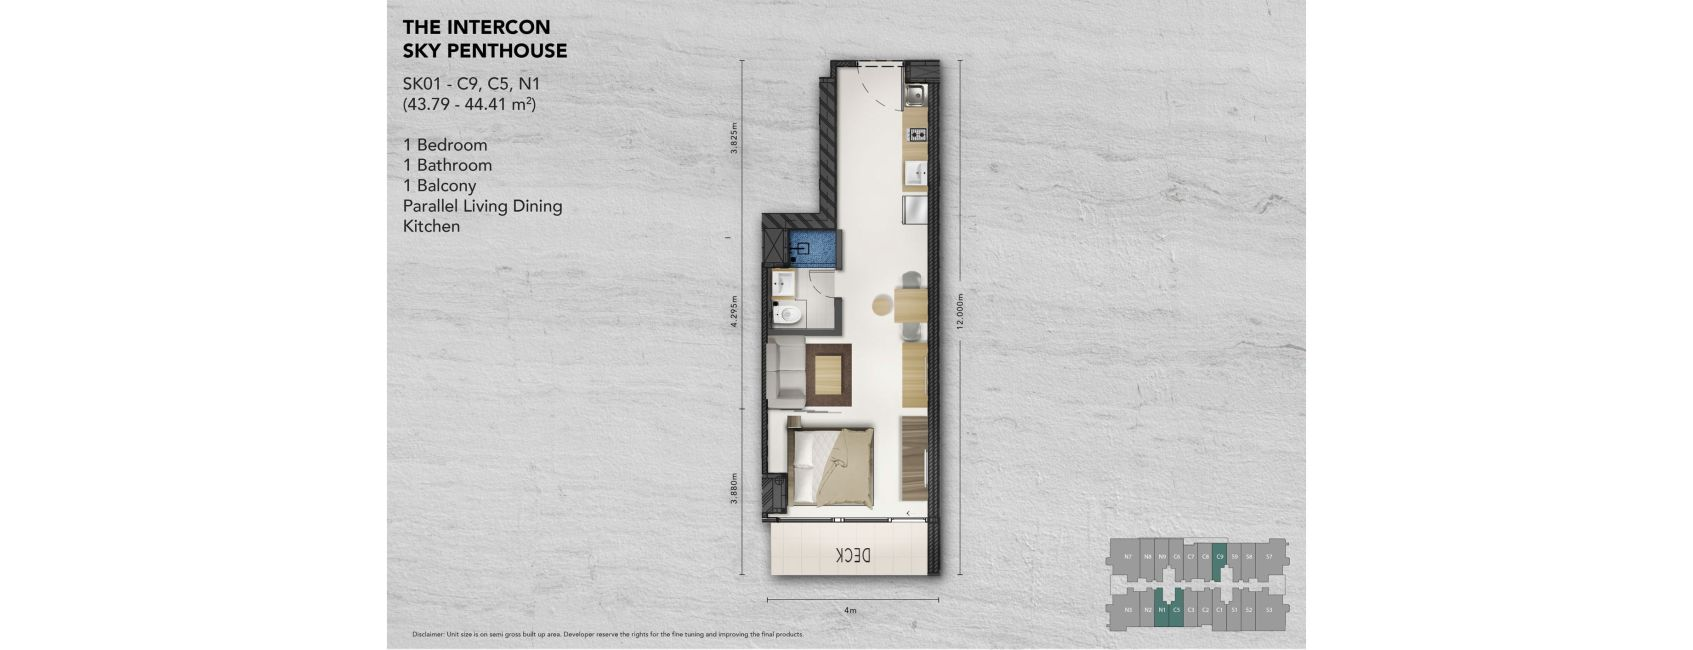 Kemang Village - The Intercon Tipe Sky Penthouse